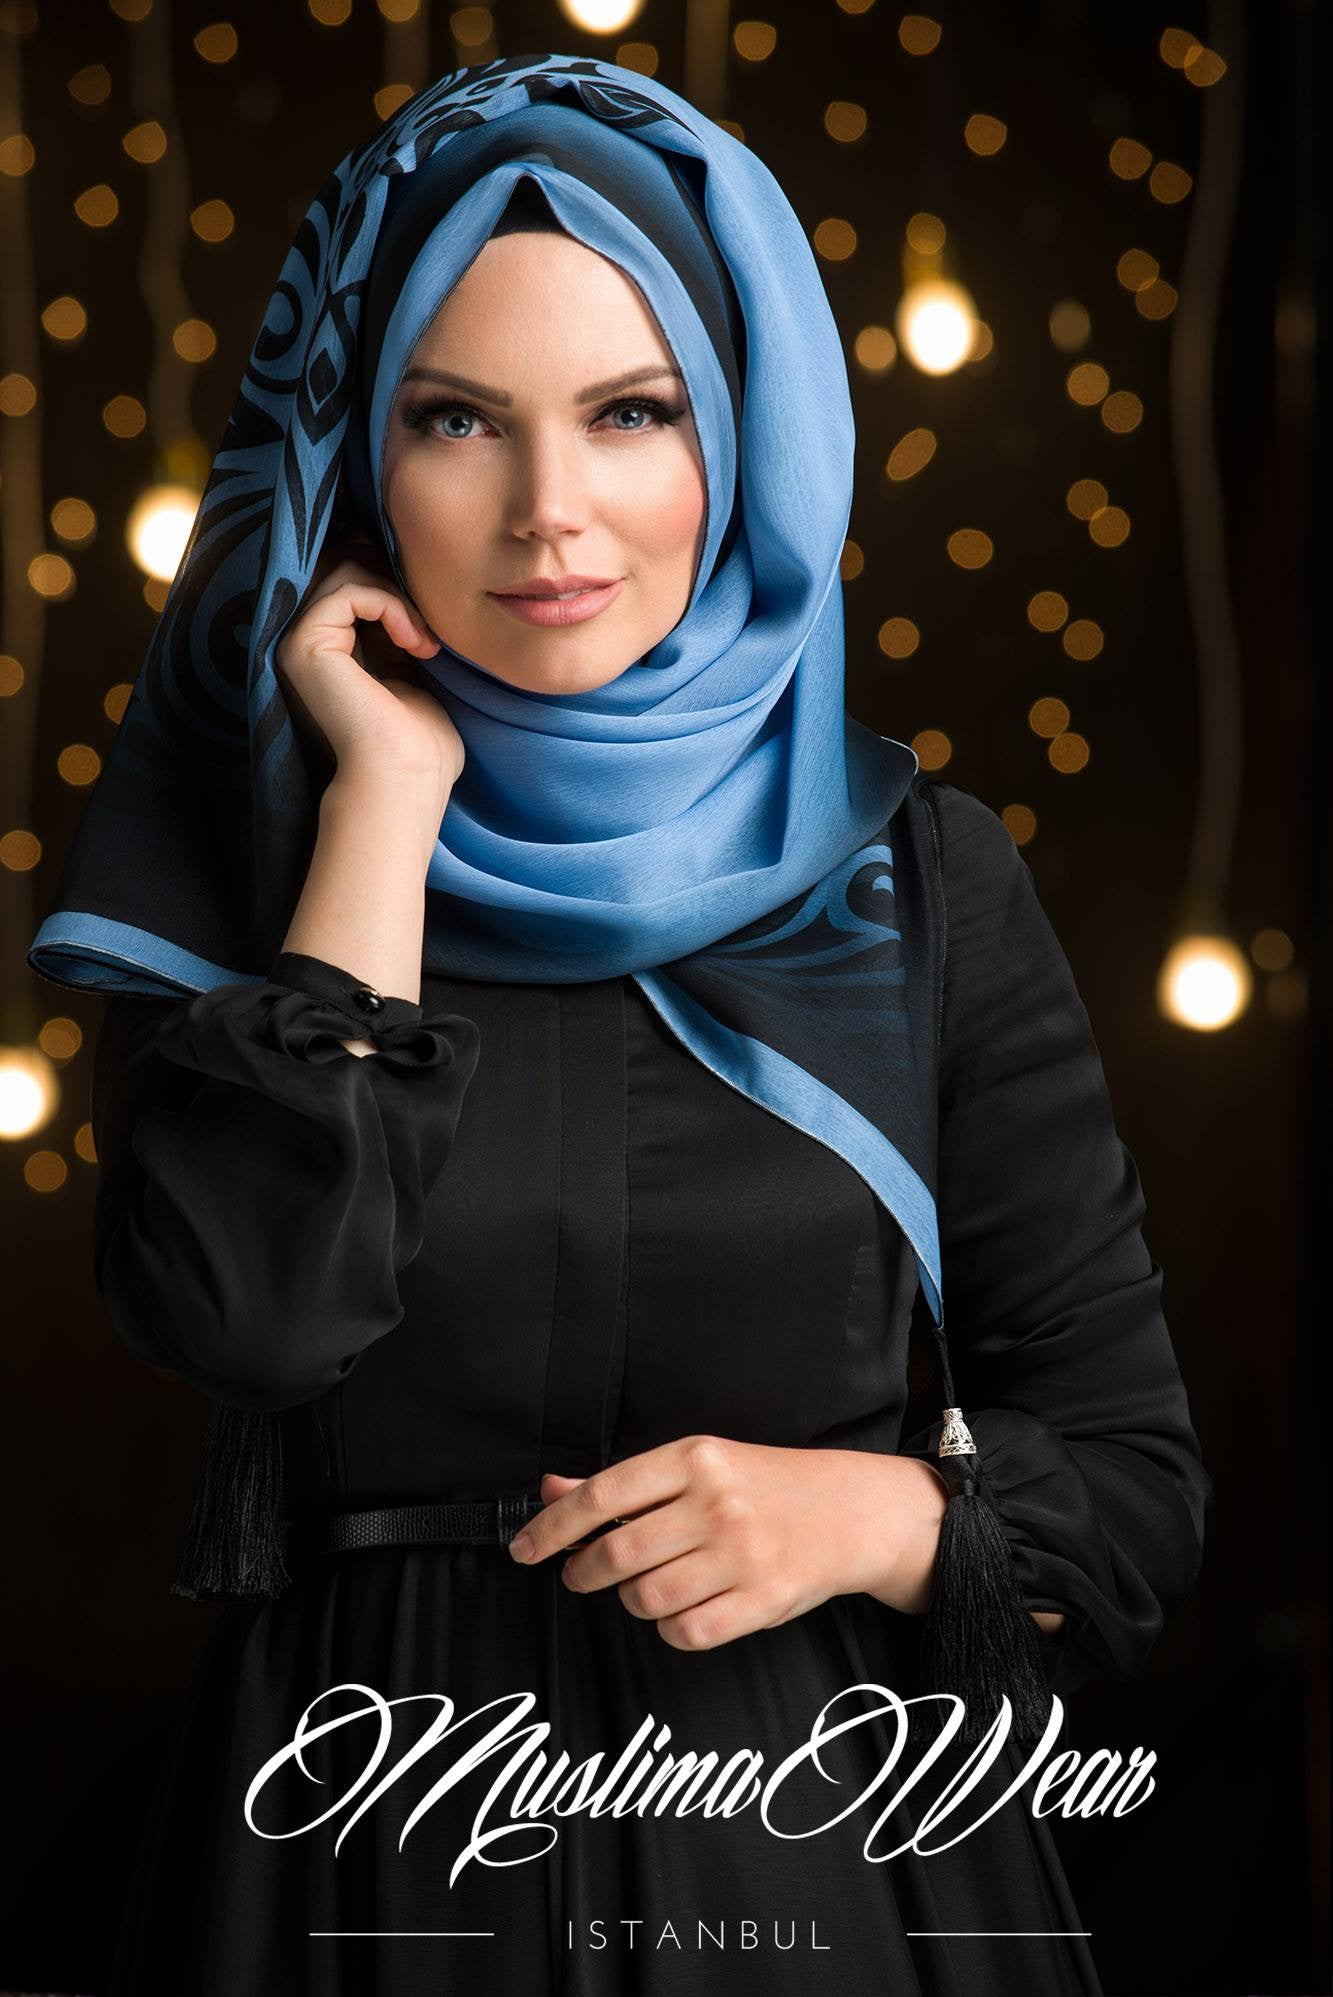 Muslima Wear Sultan Hijab Mist Blue